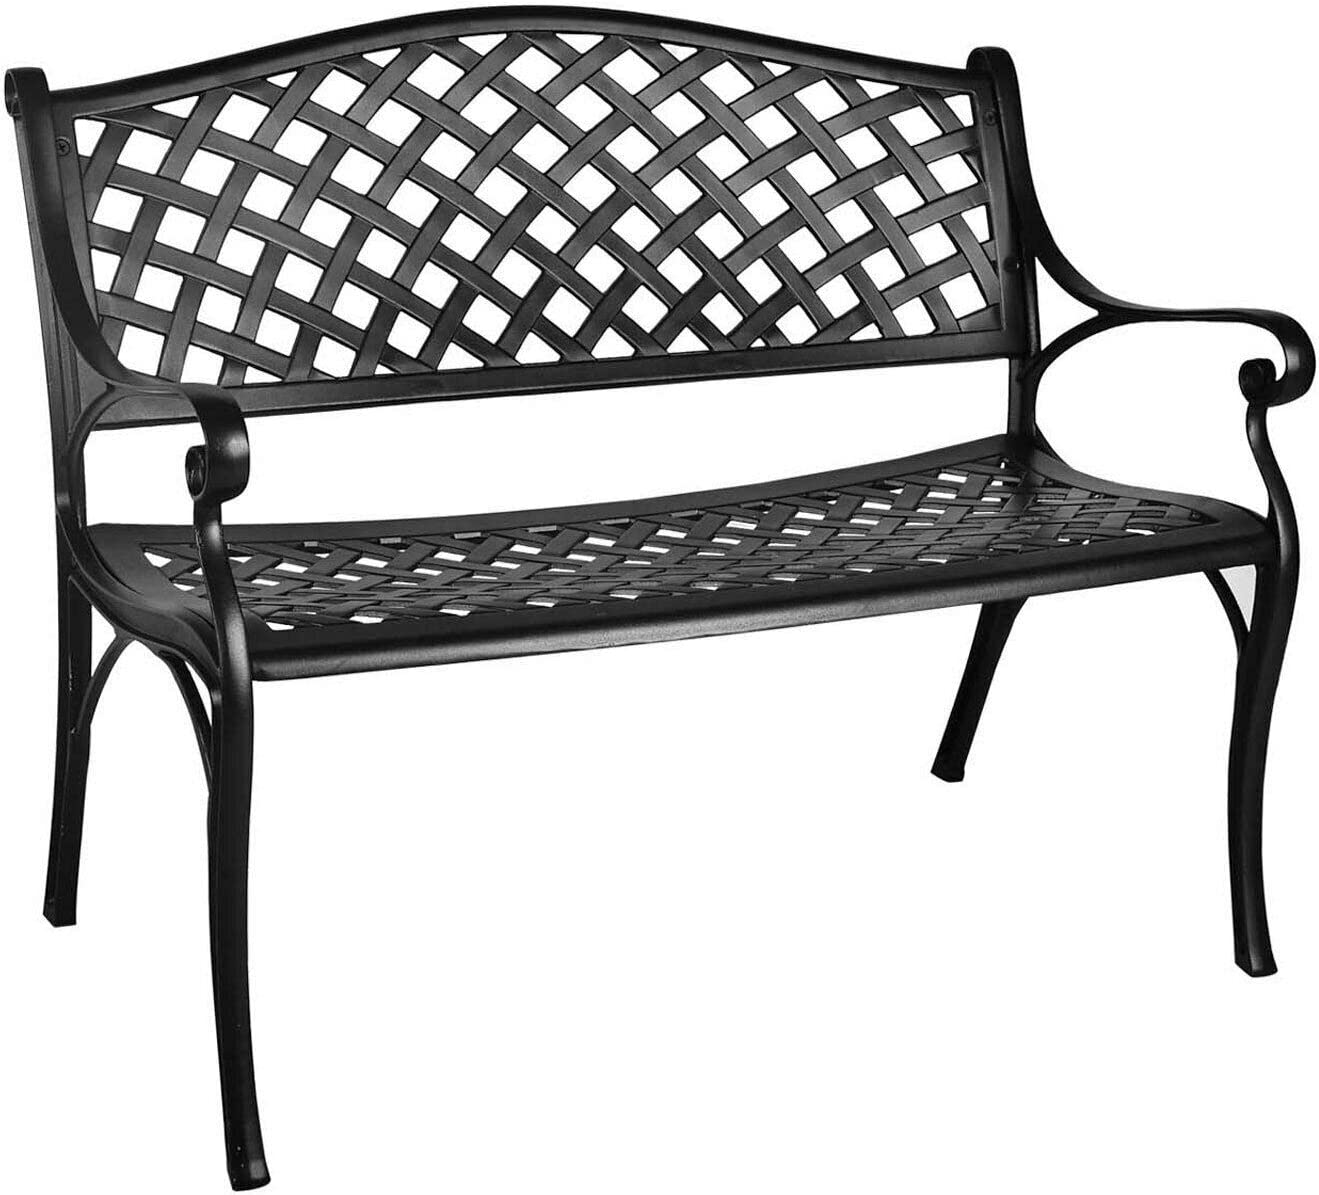 Outdoor Patio Garden Bench Park Loveseat Chair All-Weather Cast Aluminum-Garden Bench-Outdoor Bench with Back-Bench for Outside-Bench Patio-Wooden Benches Outdoor-Outdoor Garden Benches